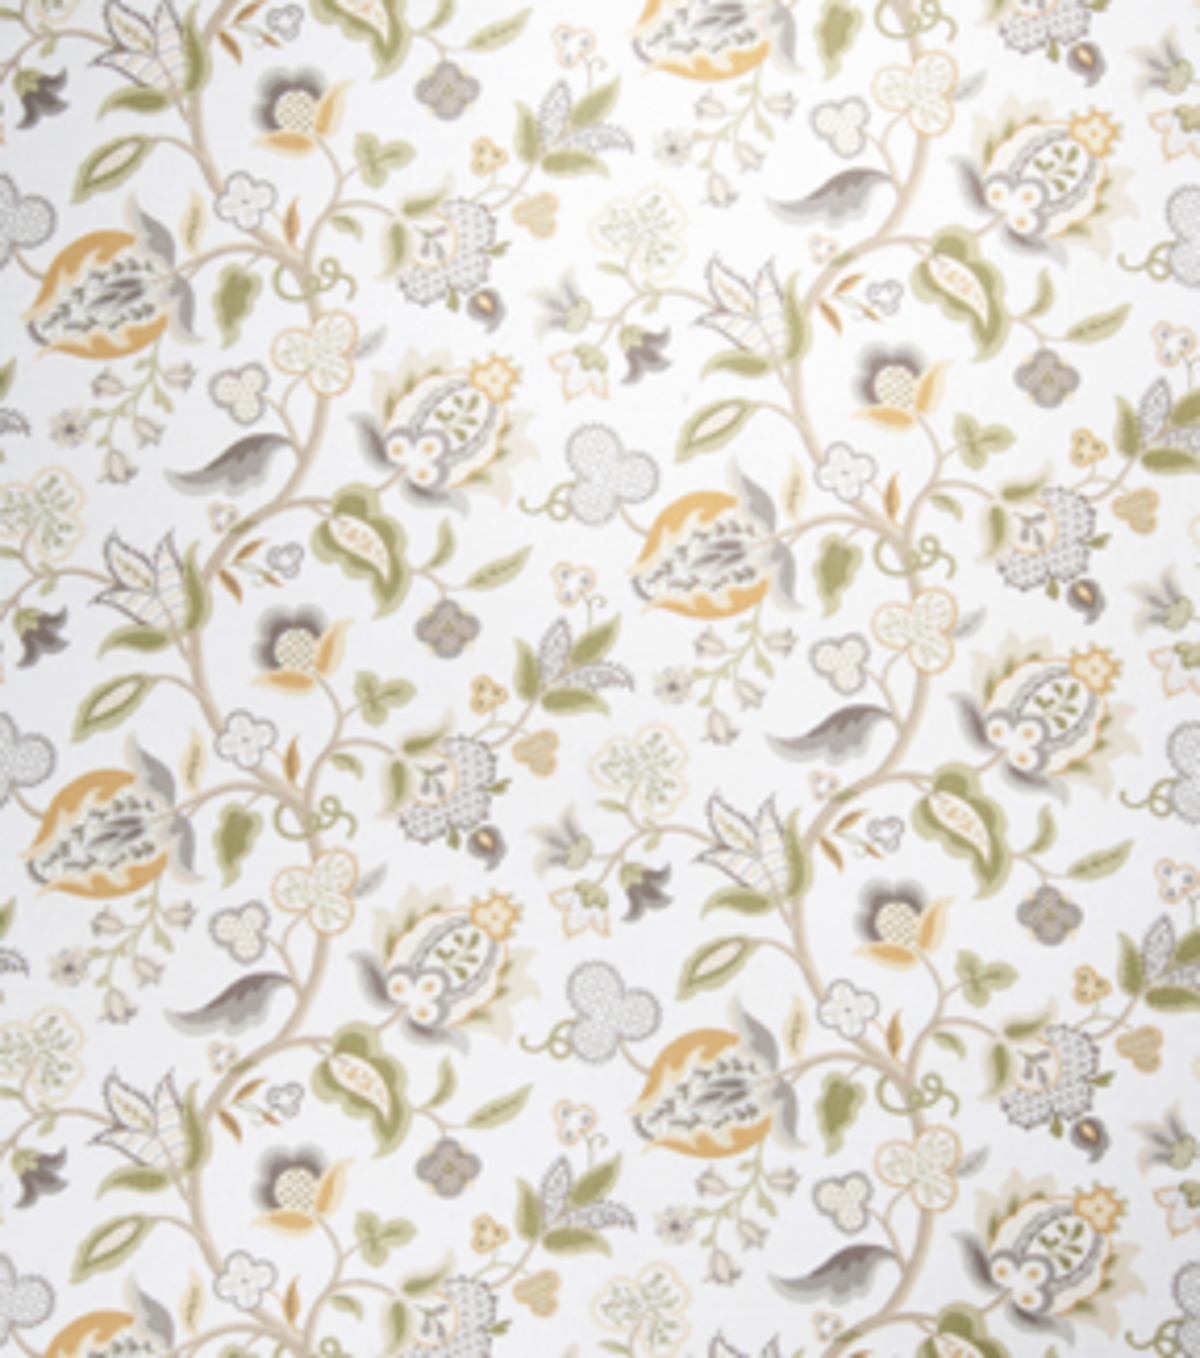 Home Decor 8\u0022x8\u0022 Fabric Swatch-Eaton Square Bearings Vanilla